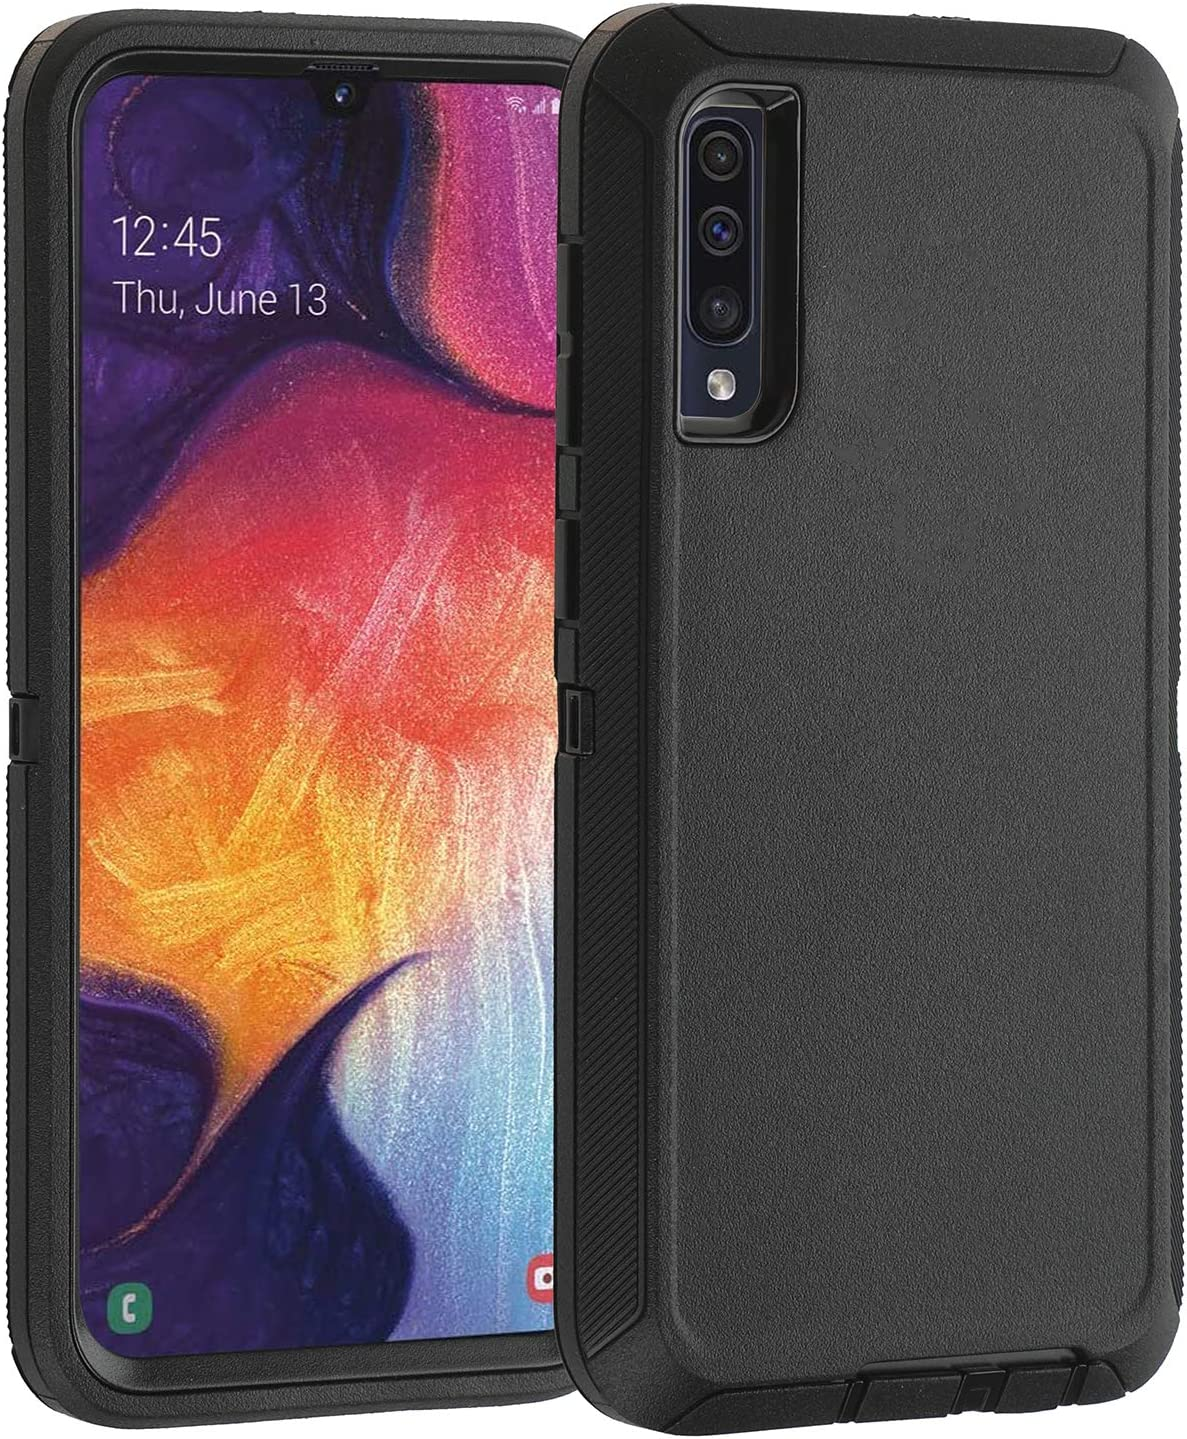 smartelf Compatible with Samsung Galaxy A50 Case A50s Heavy Duty Shockproof Dual Layer Protective Cover Drop Protection Hard Shell-Black